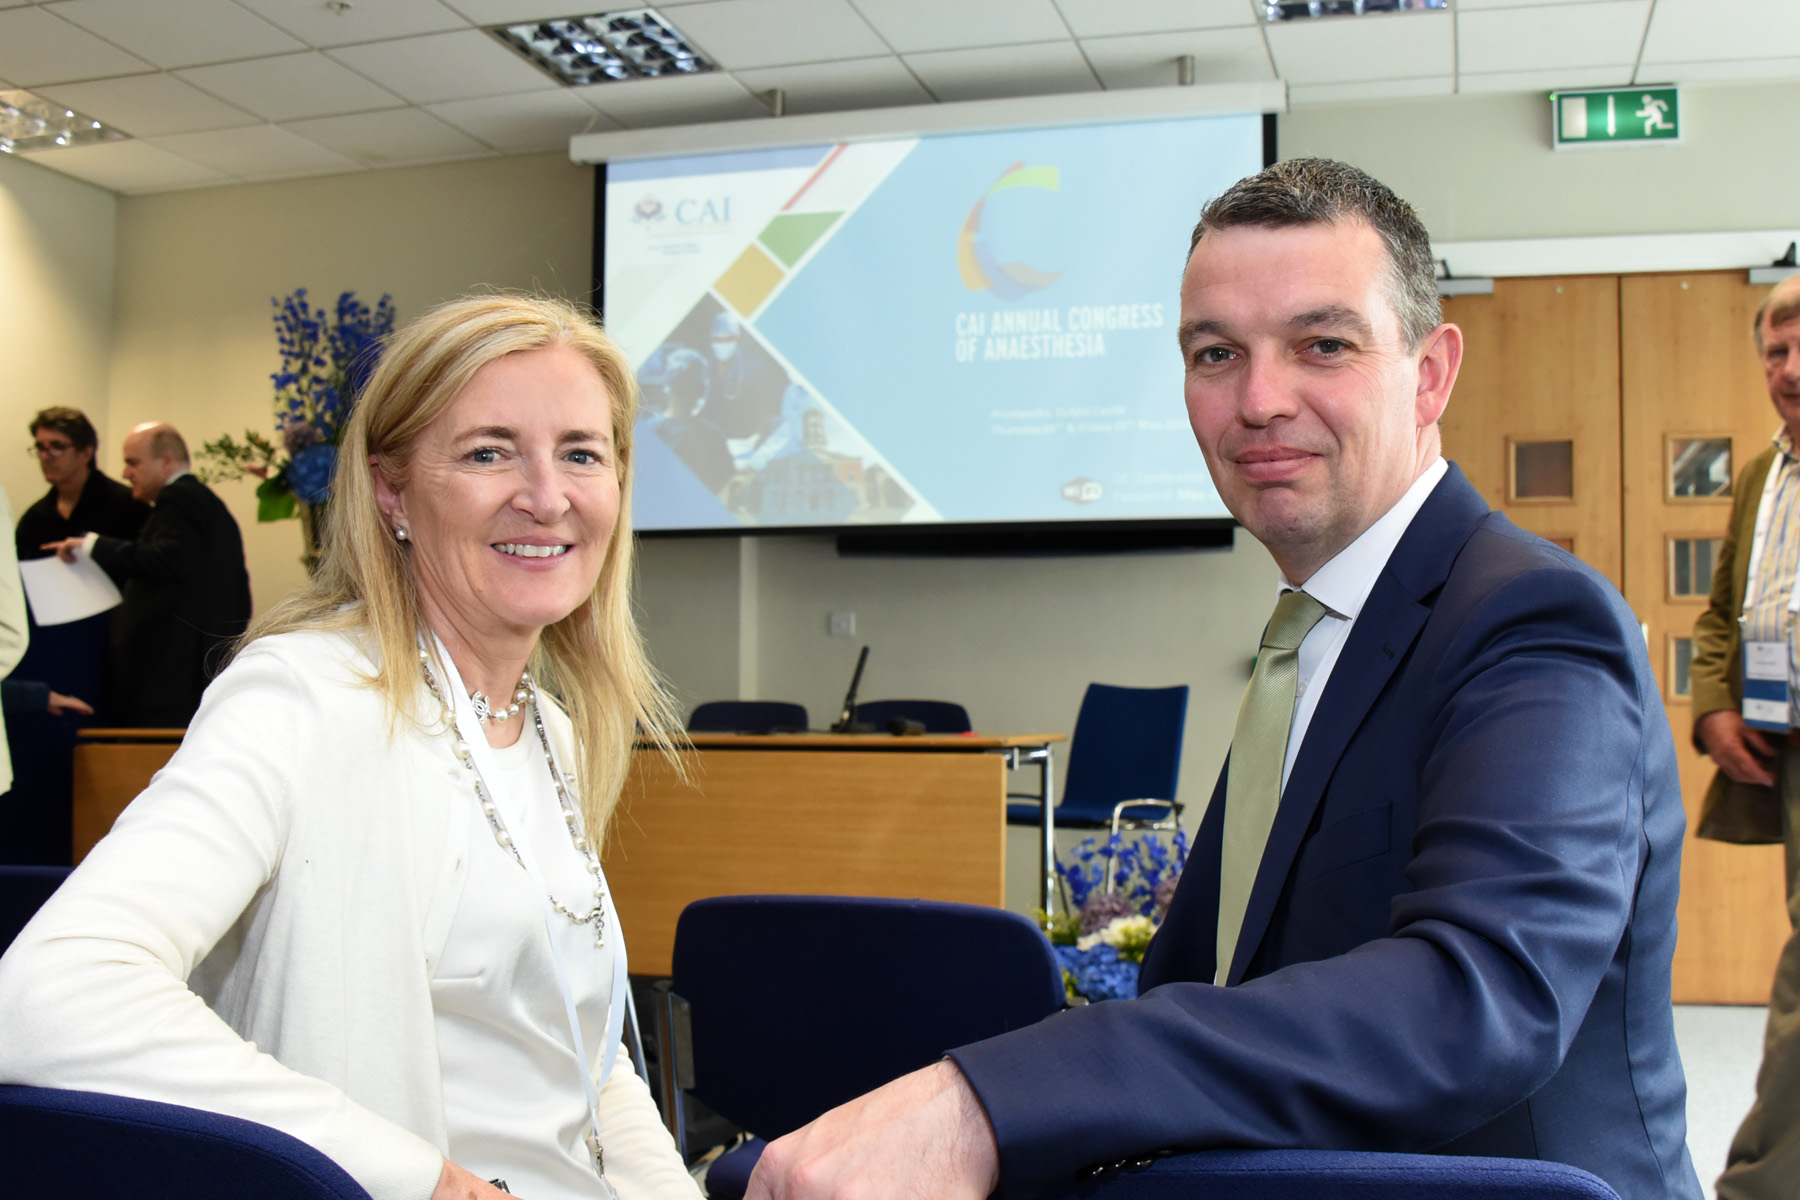 College of Anaesthetists of Ireland Annual Congress 2018 - Prof Ellen O'Sullivan and Mr Martin McCormack